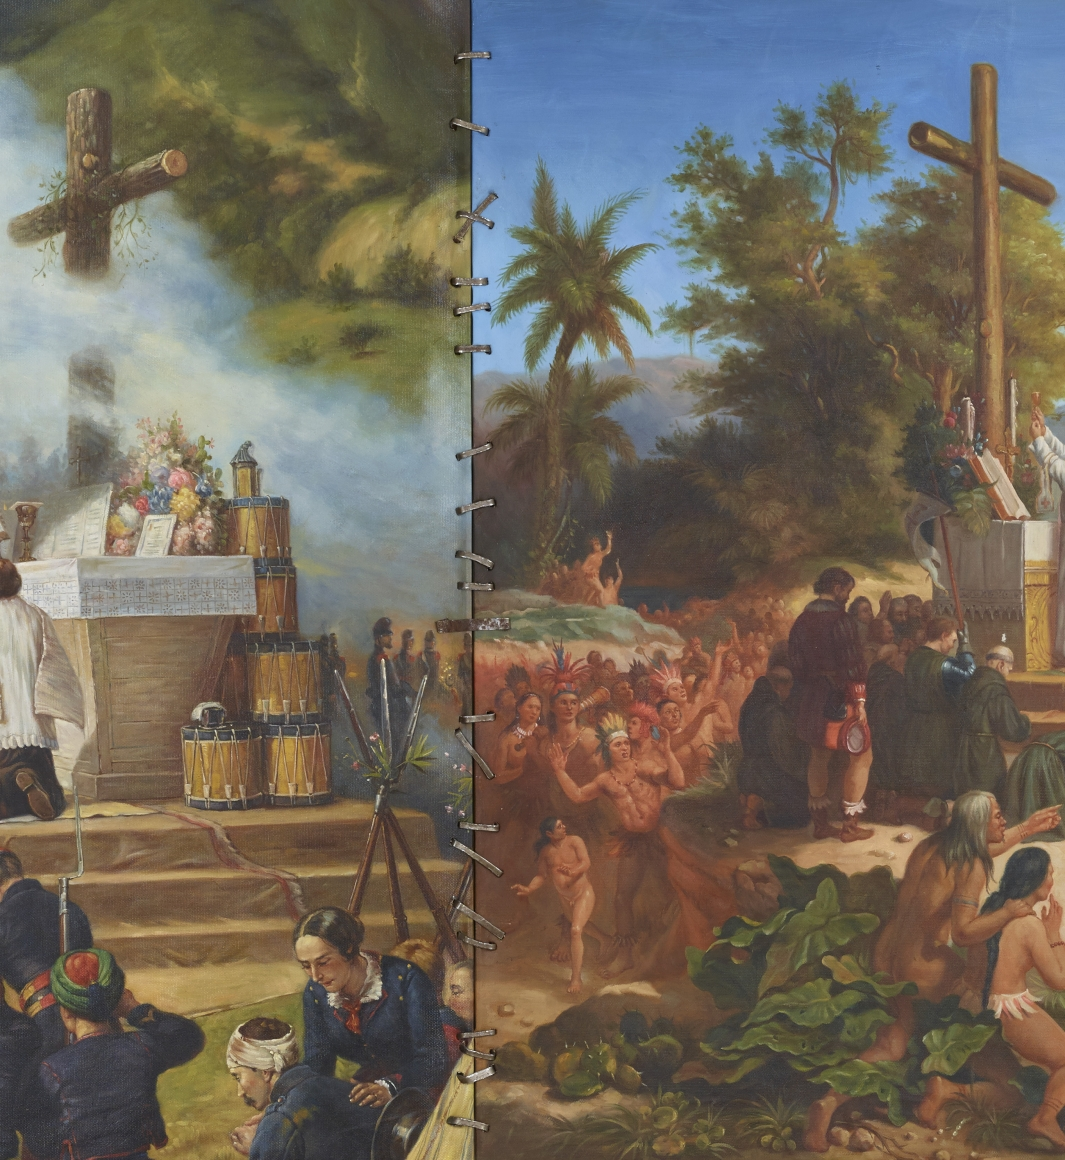 KADER ATTIA Colonial Modernity: the first mass in Brazil and Algeria (detail), 2014